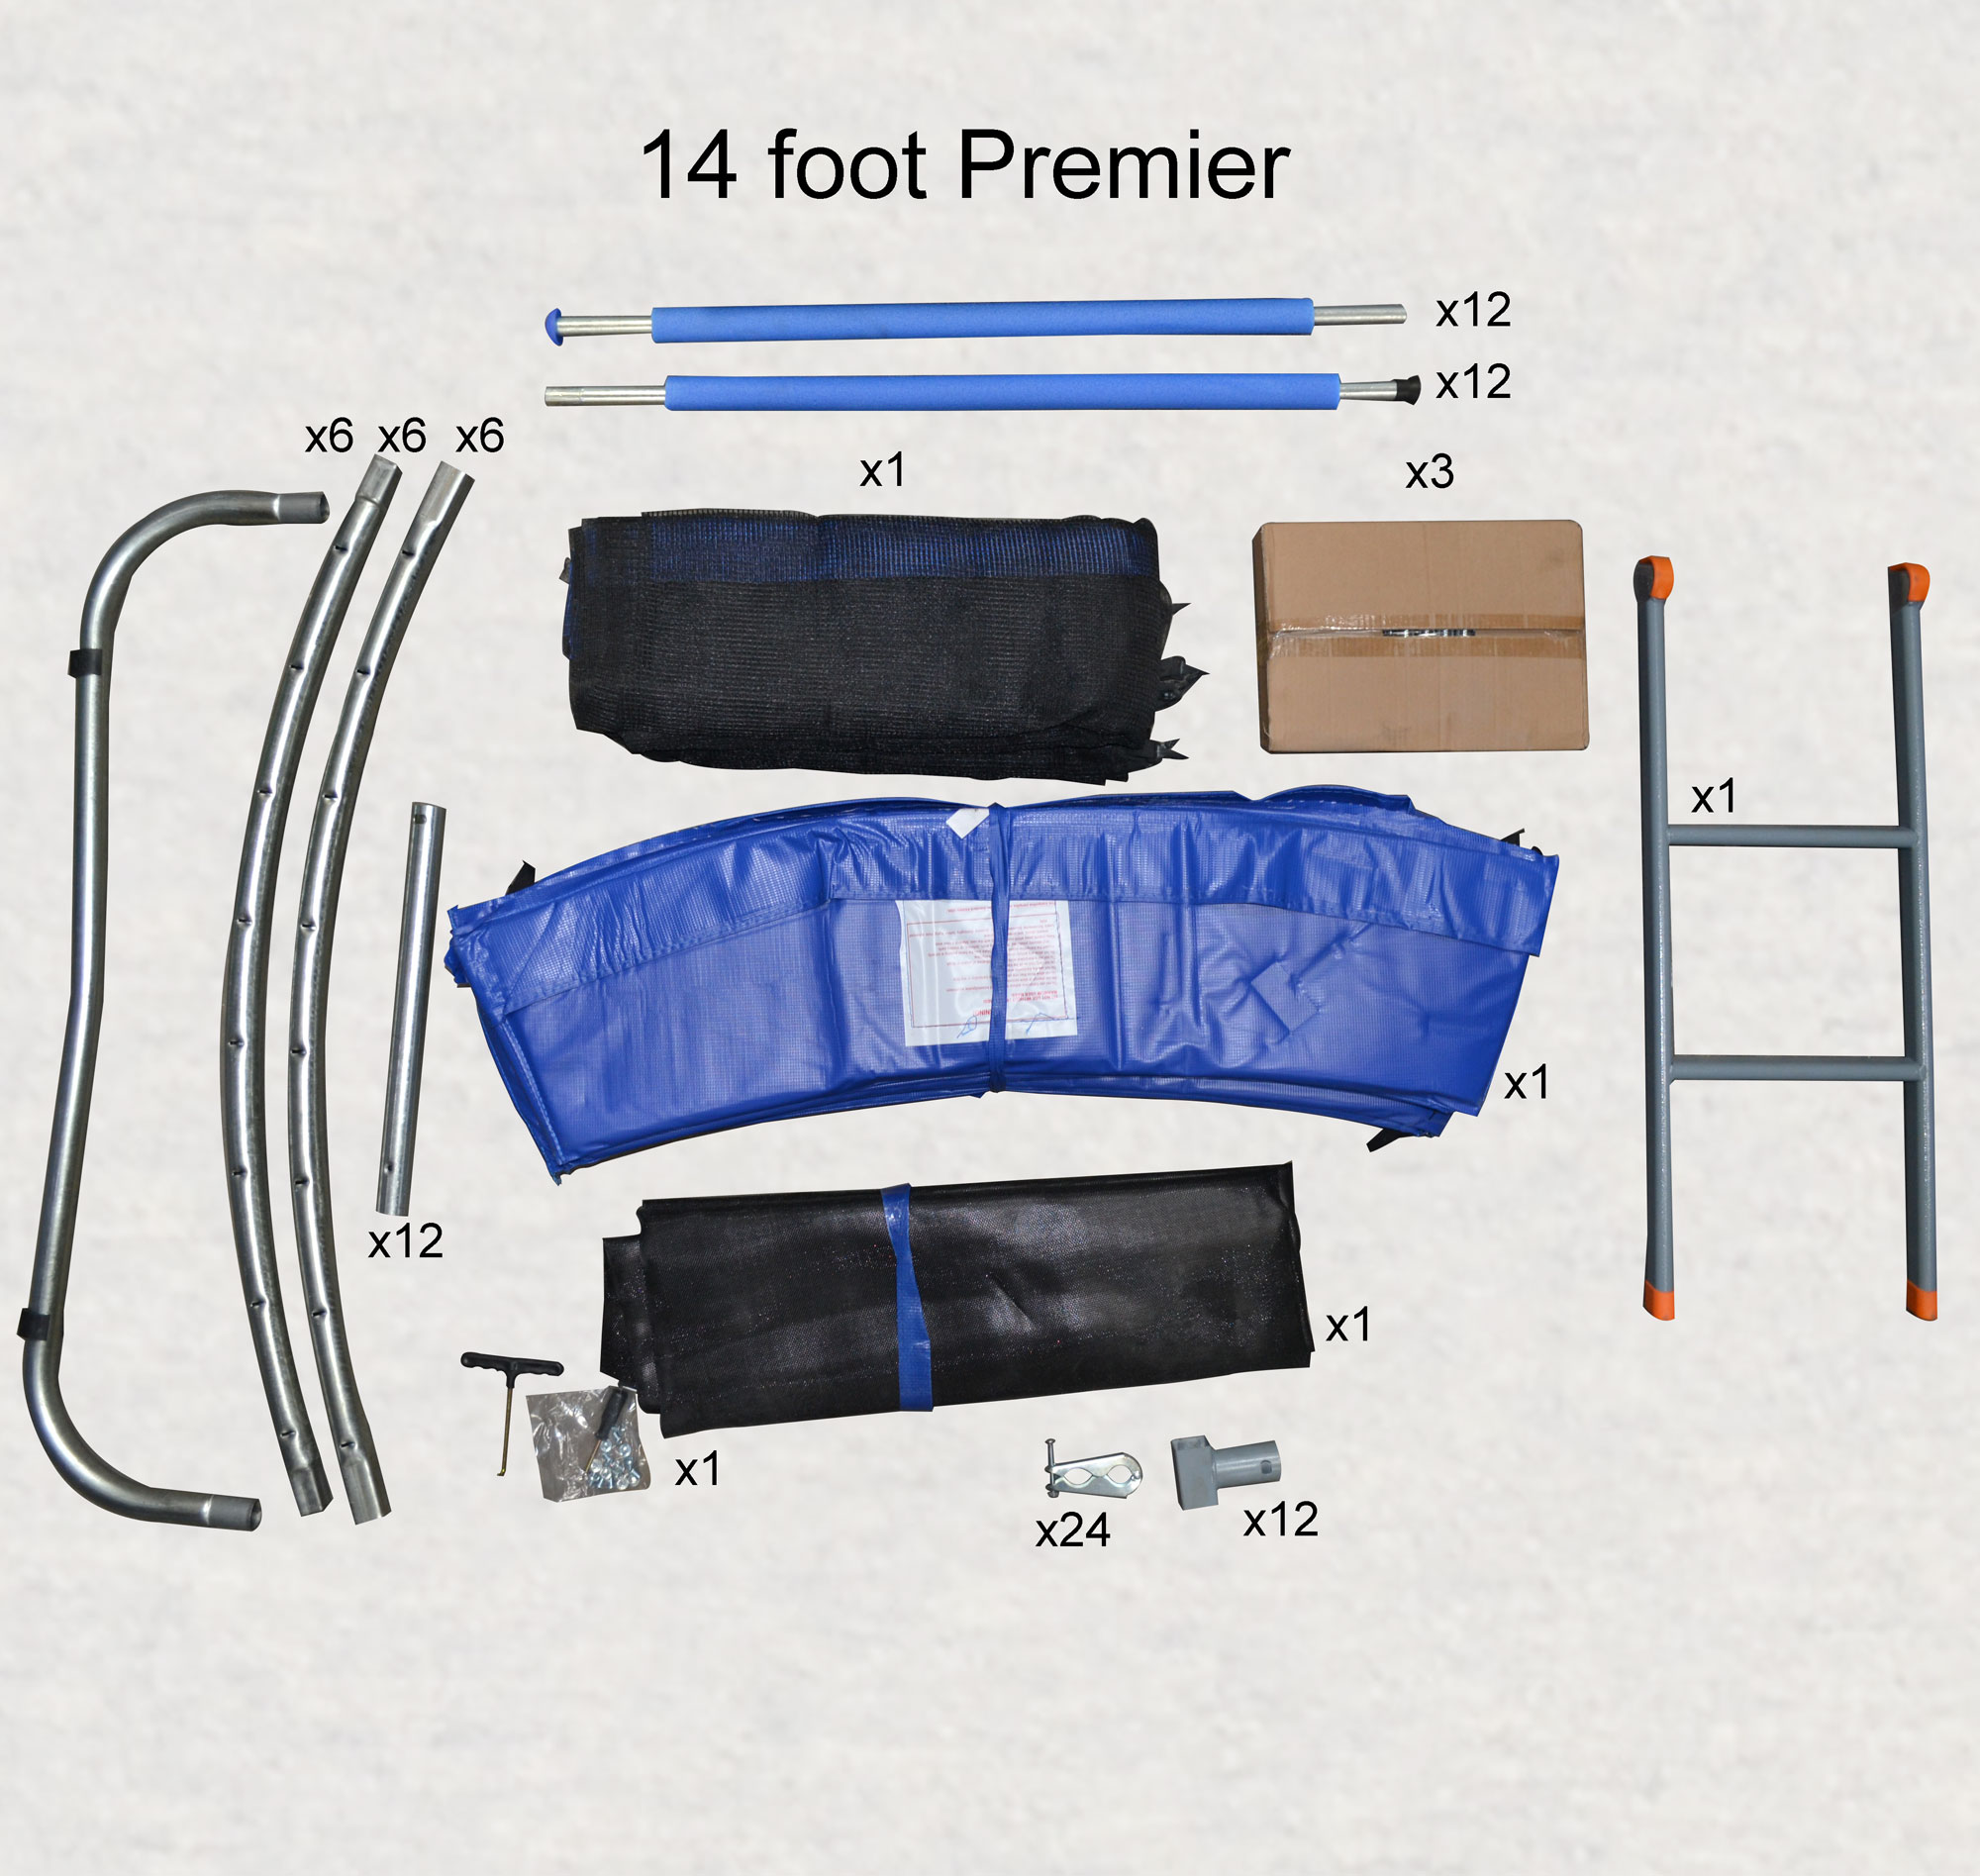 14ft Premier Trampoline Box Contents